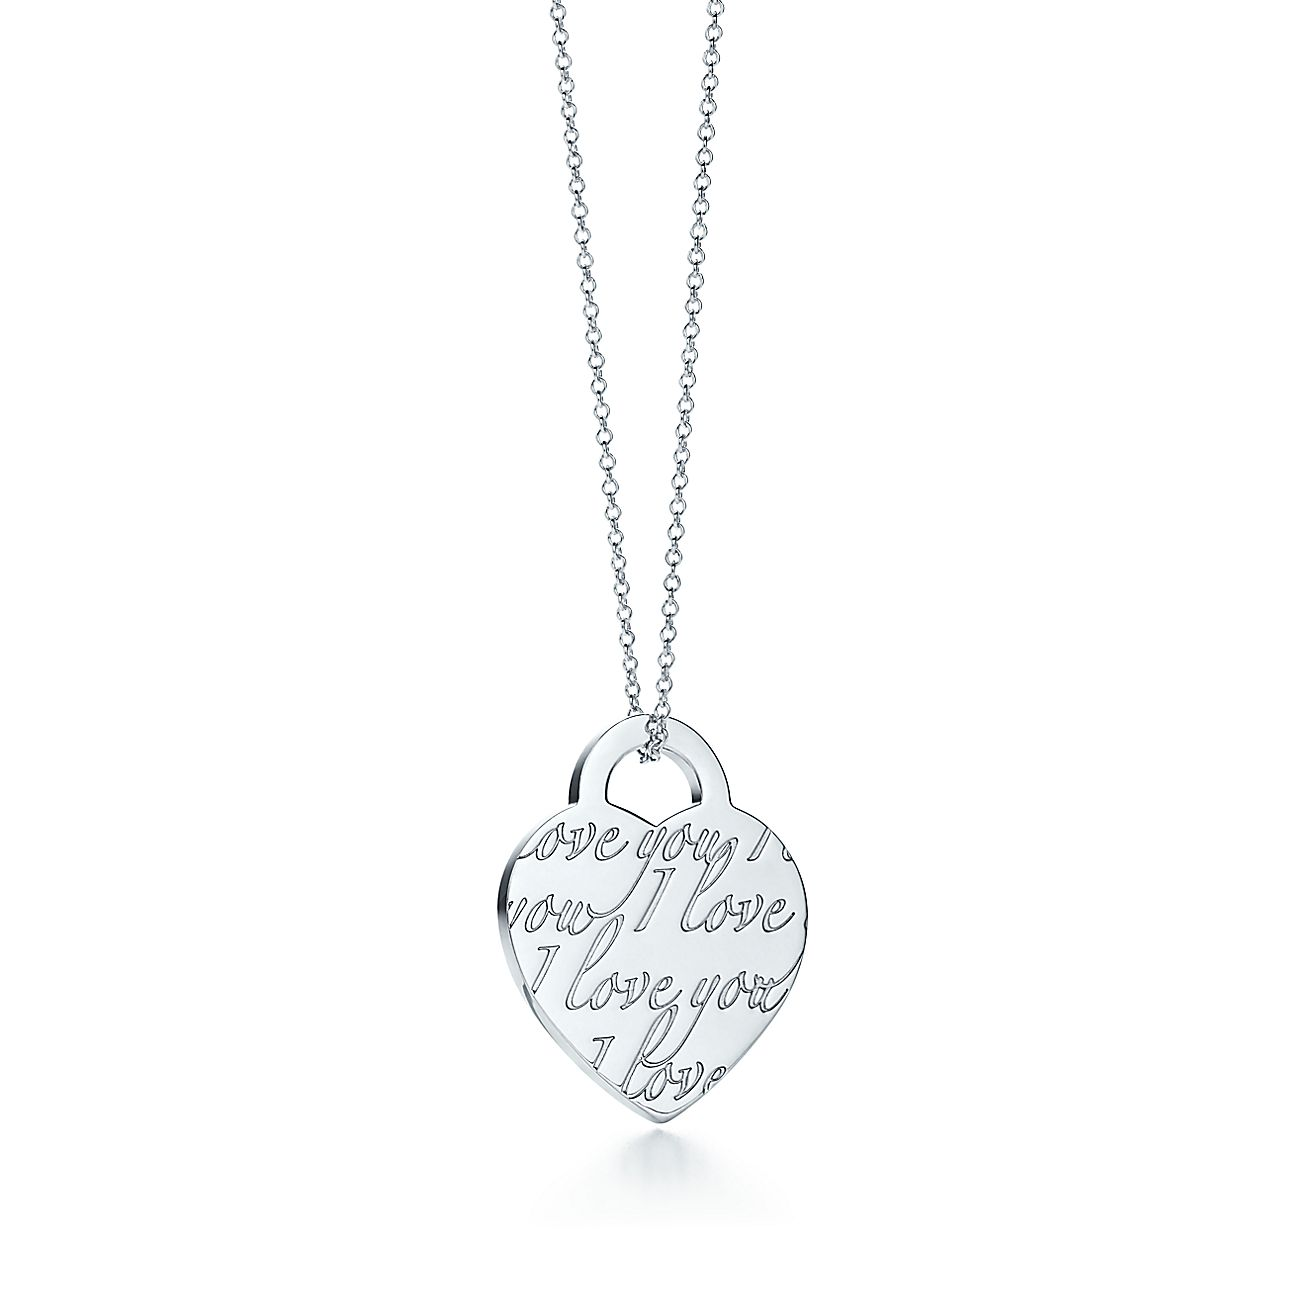 Tiffany Notes<br>I Love You pendant